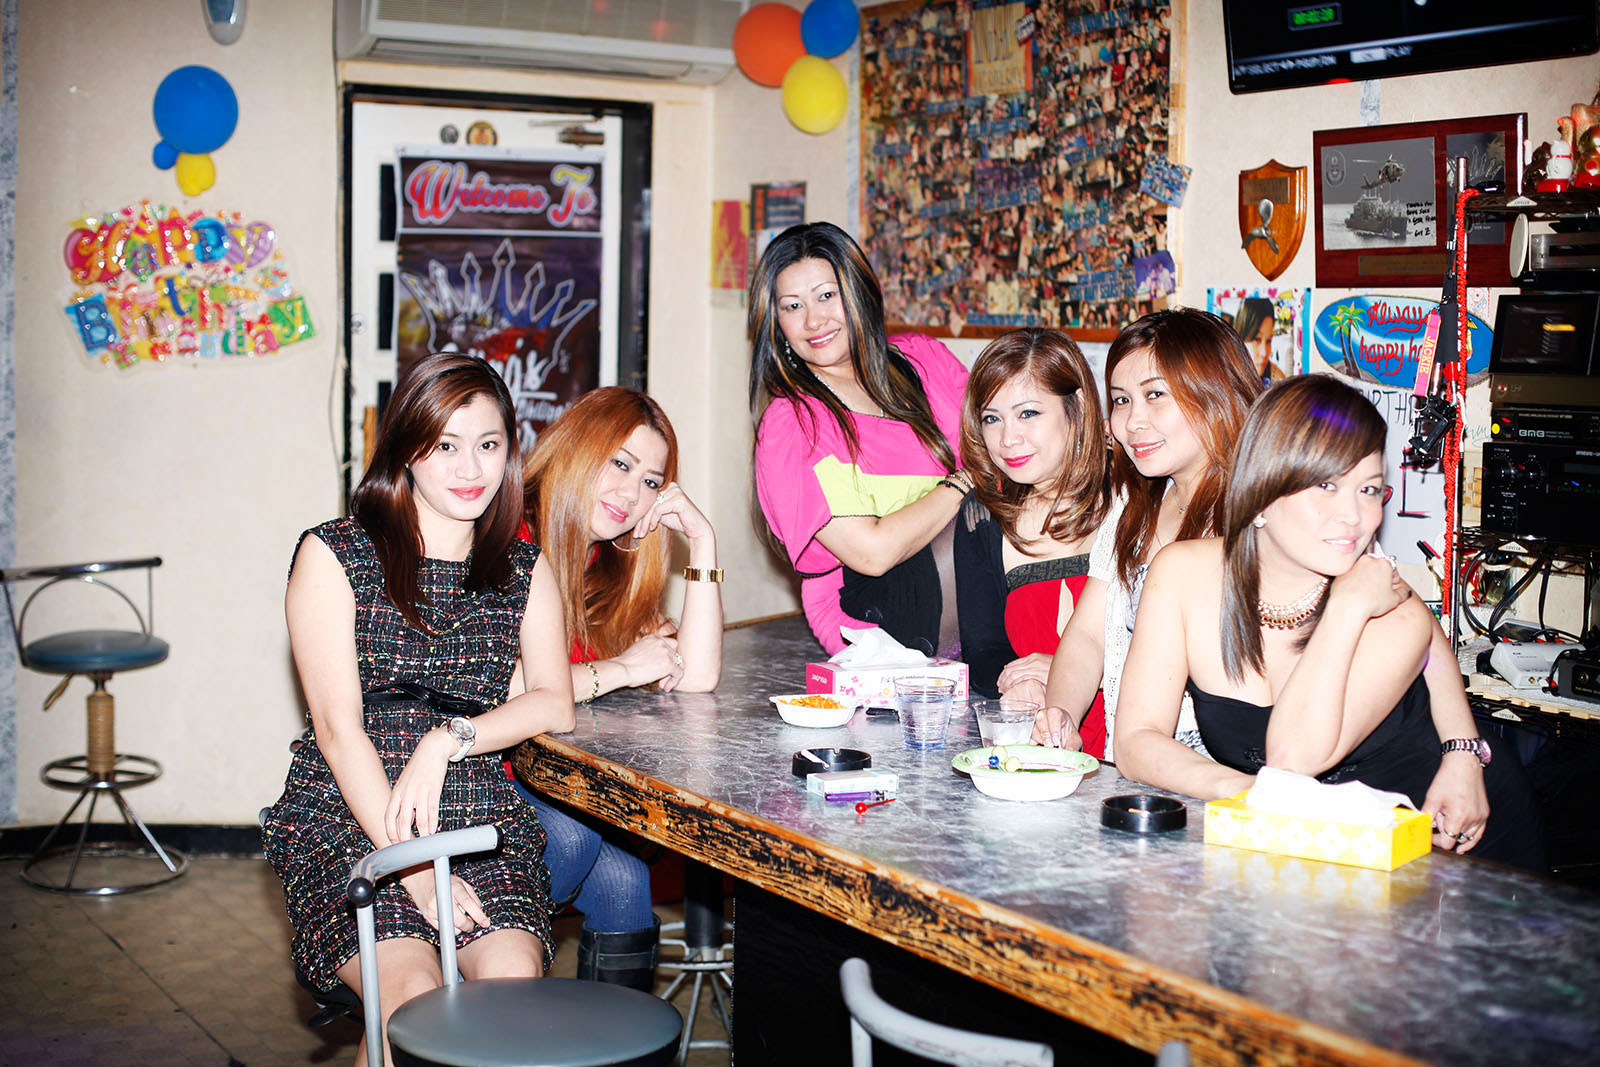 Filipino women in sailor town's bar Sasebo, Japan 2015